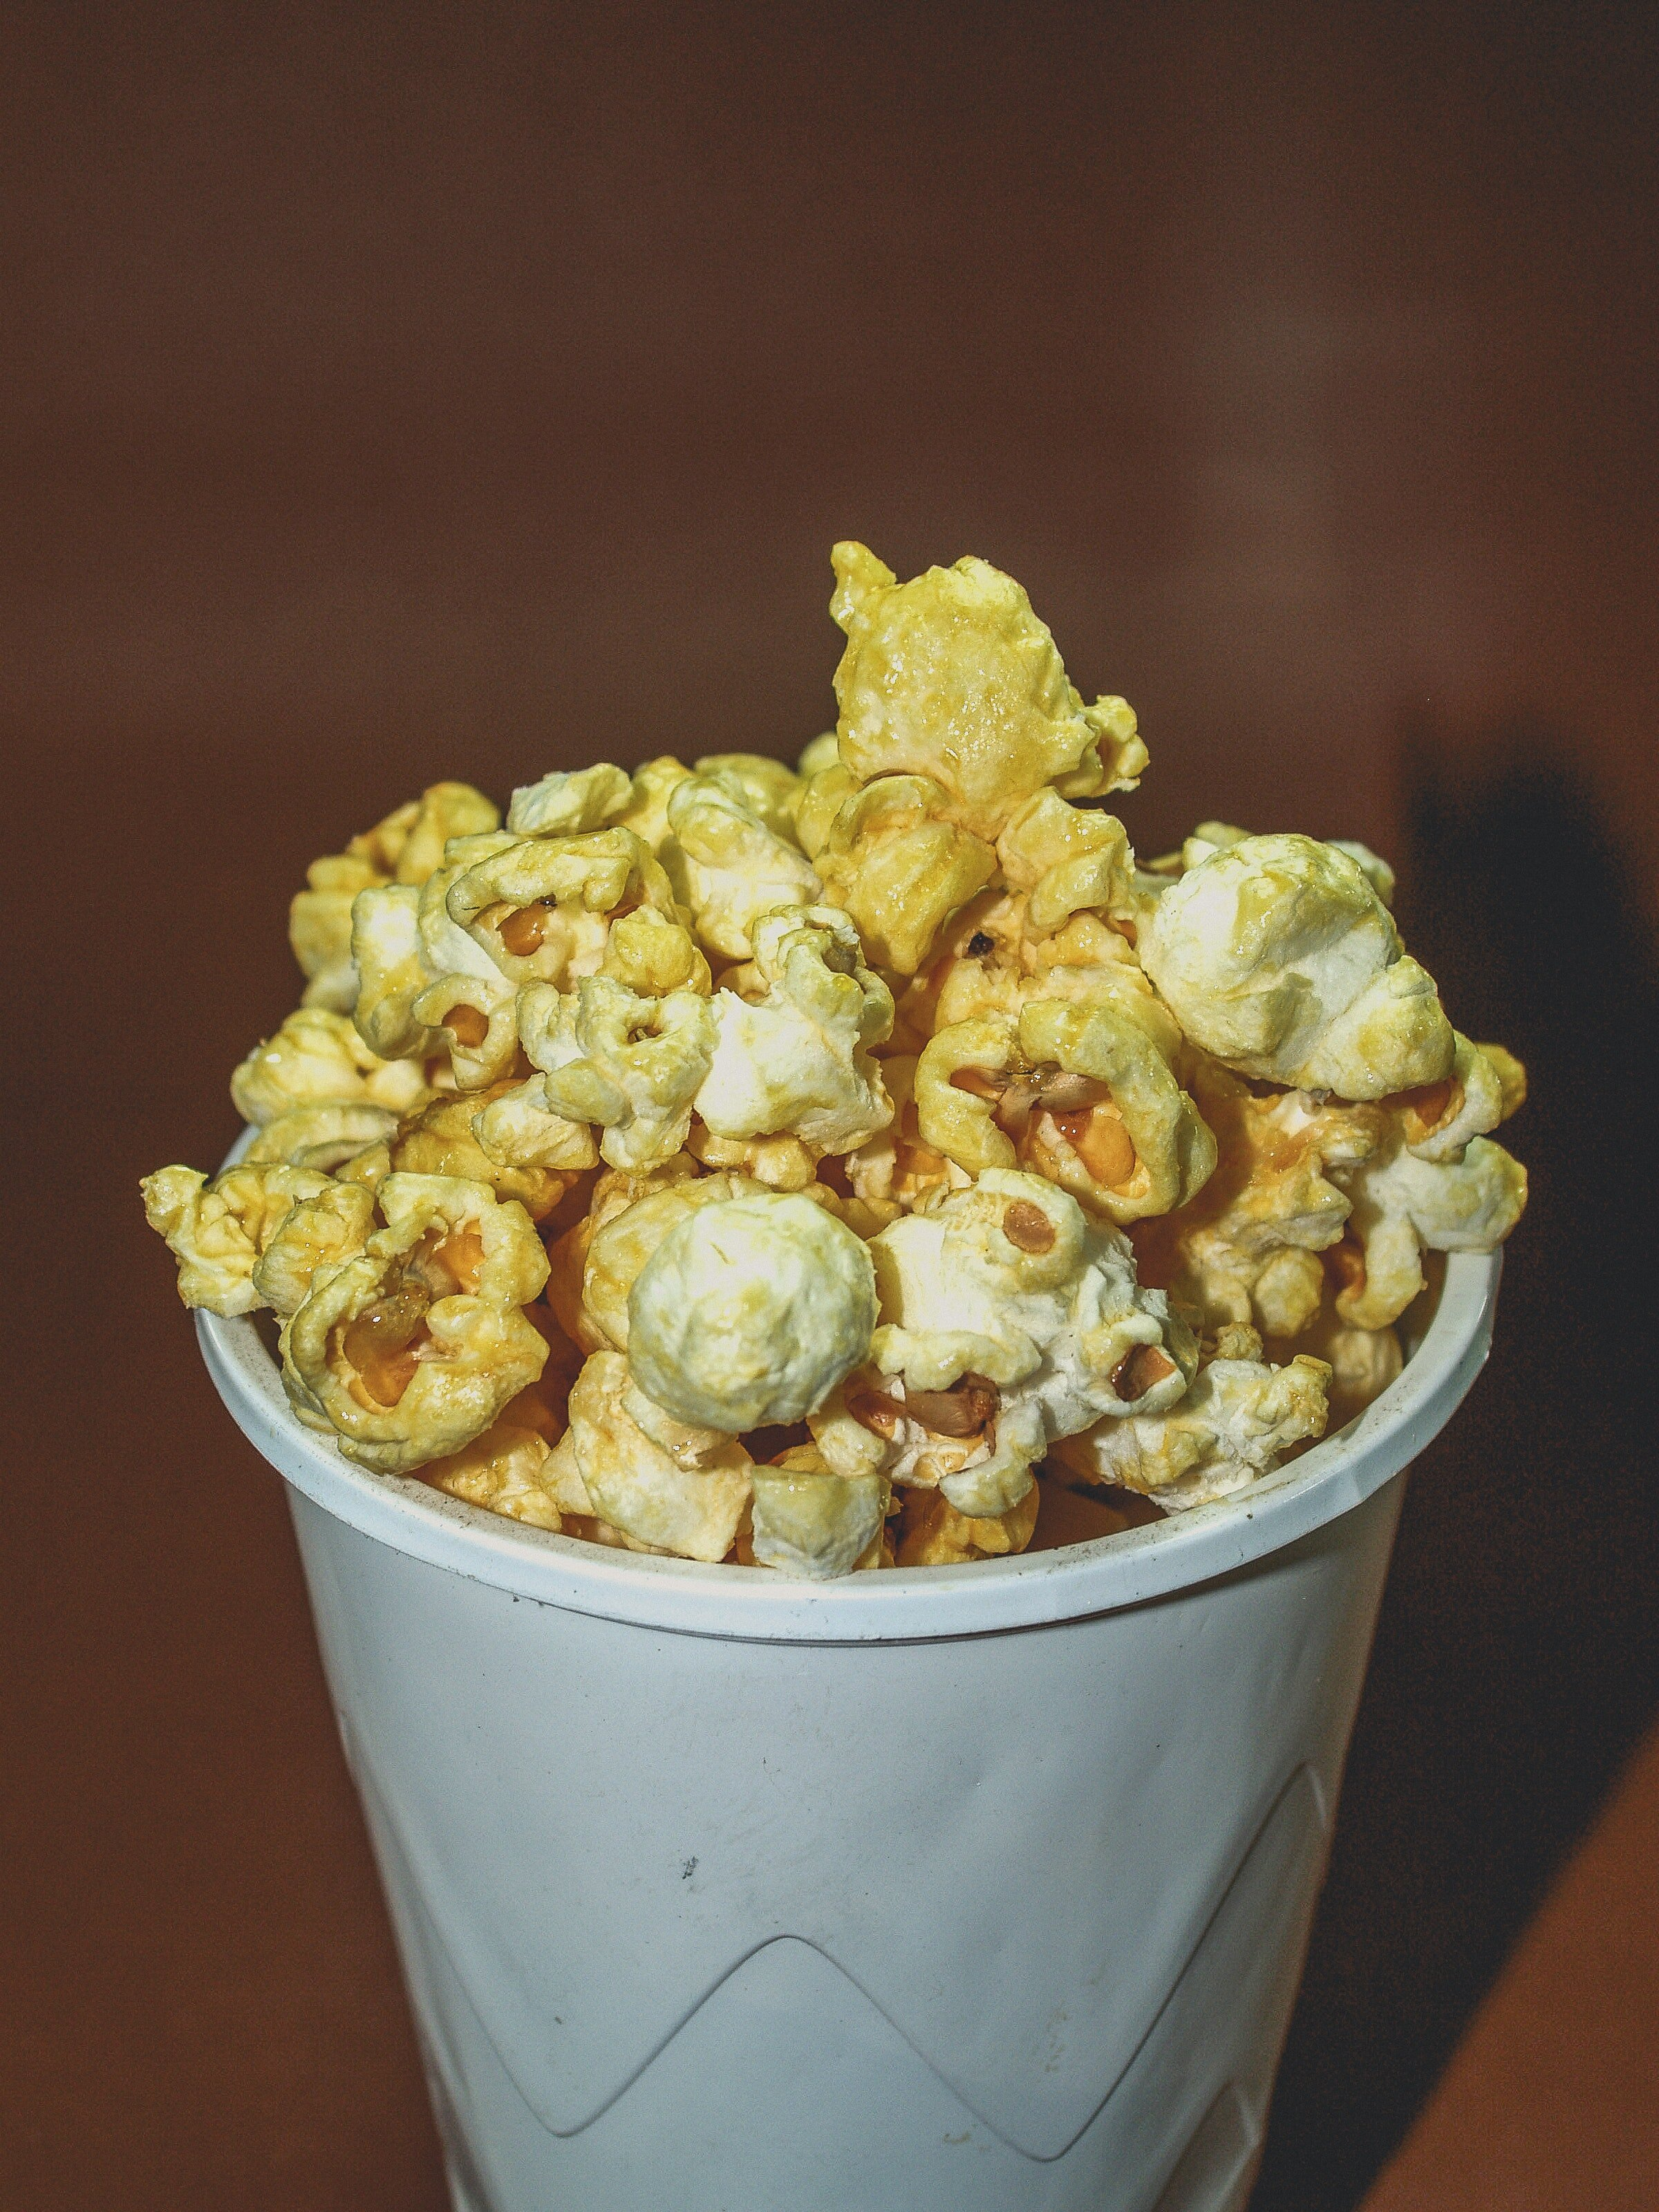 popcorn-on-disposable-cup-1230988.jpg